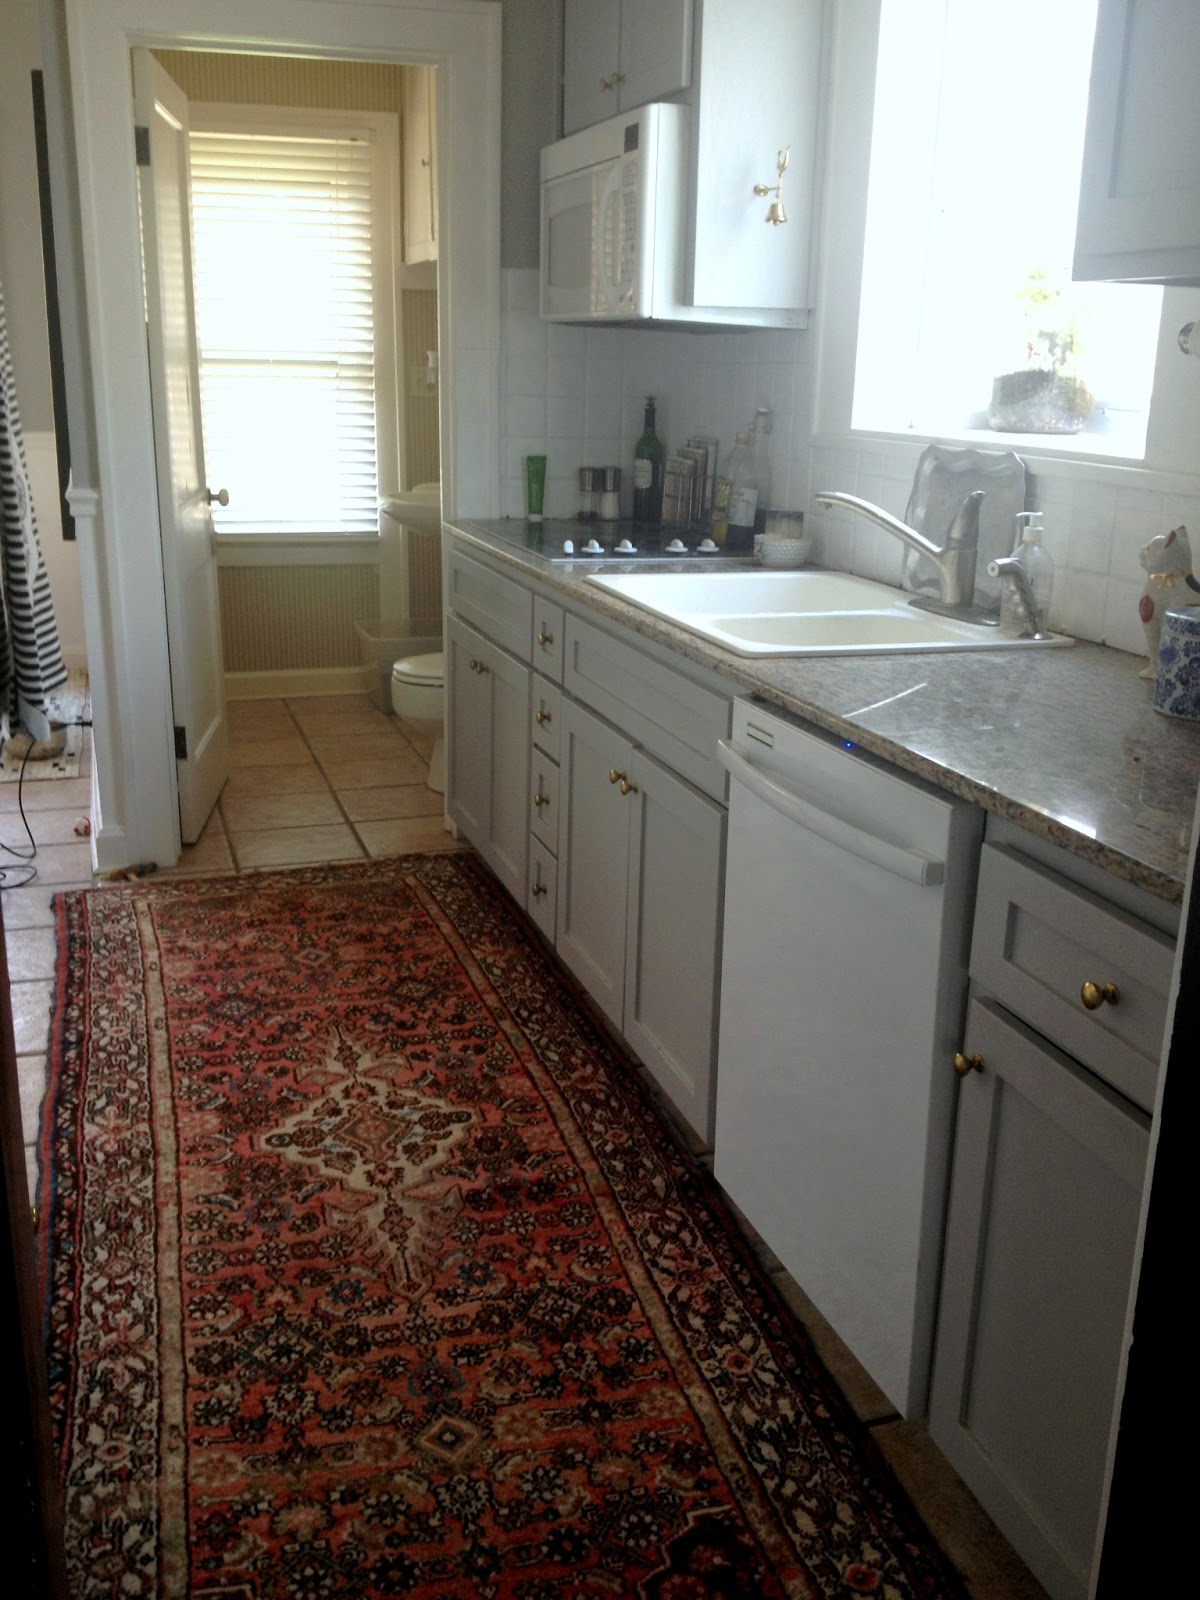 Kitchen Rug Runners Ideas